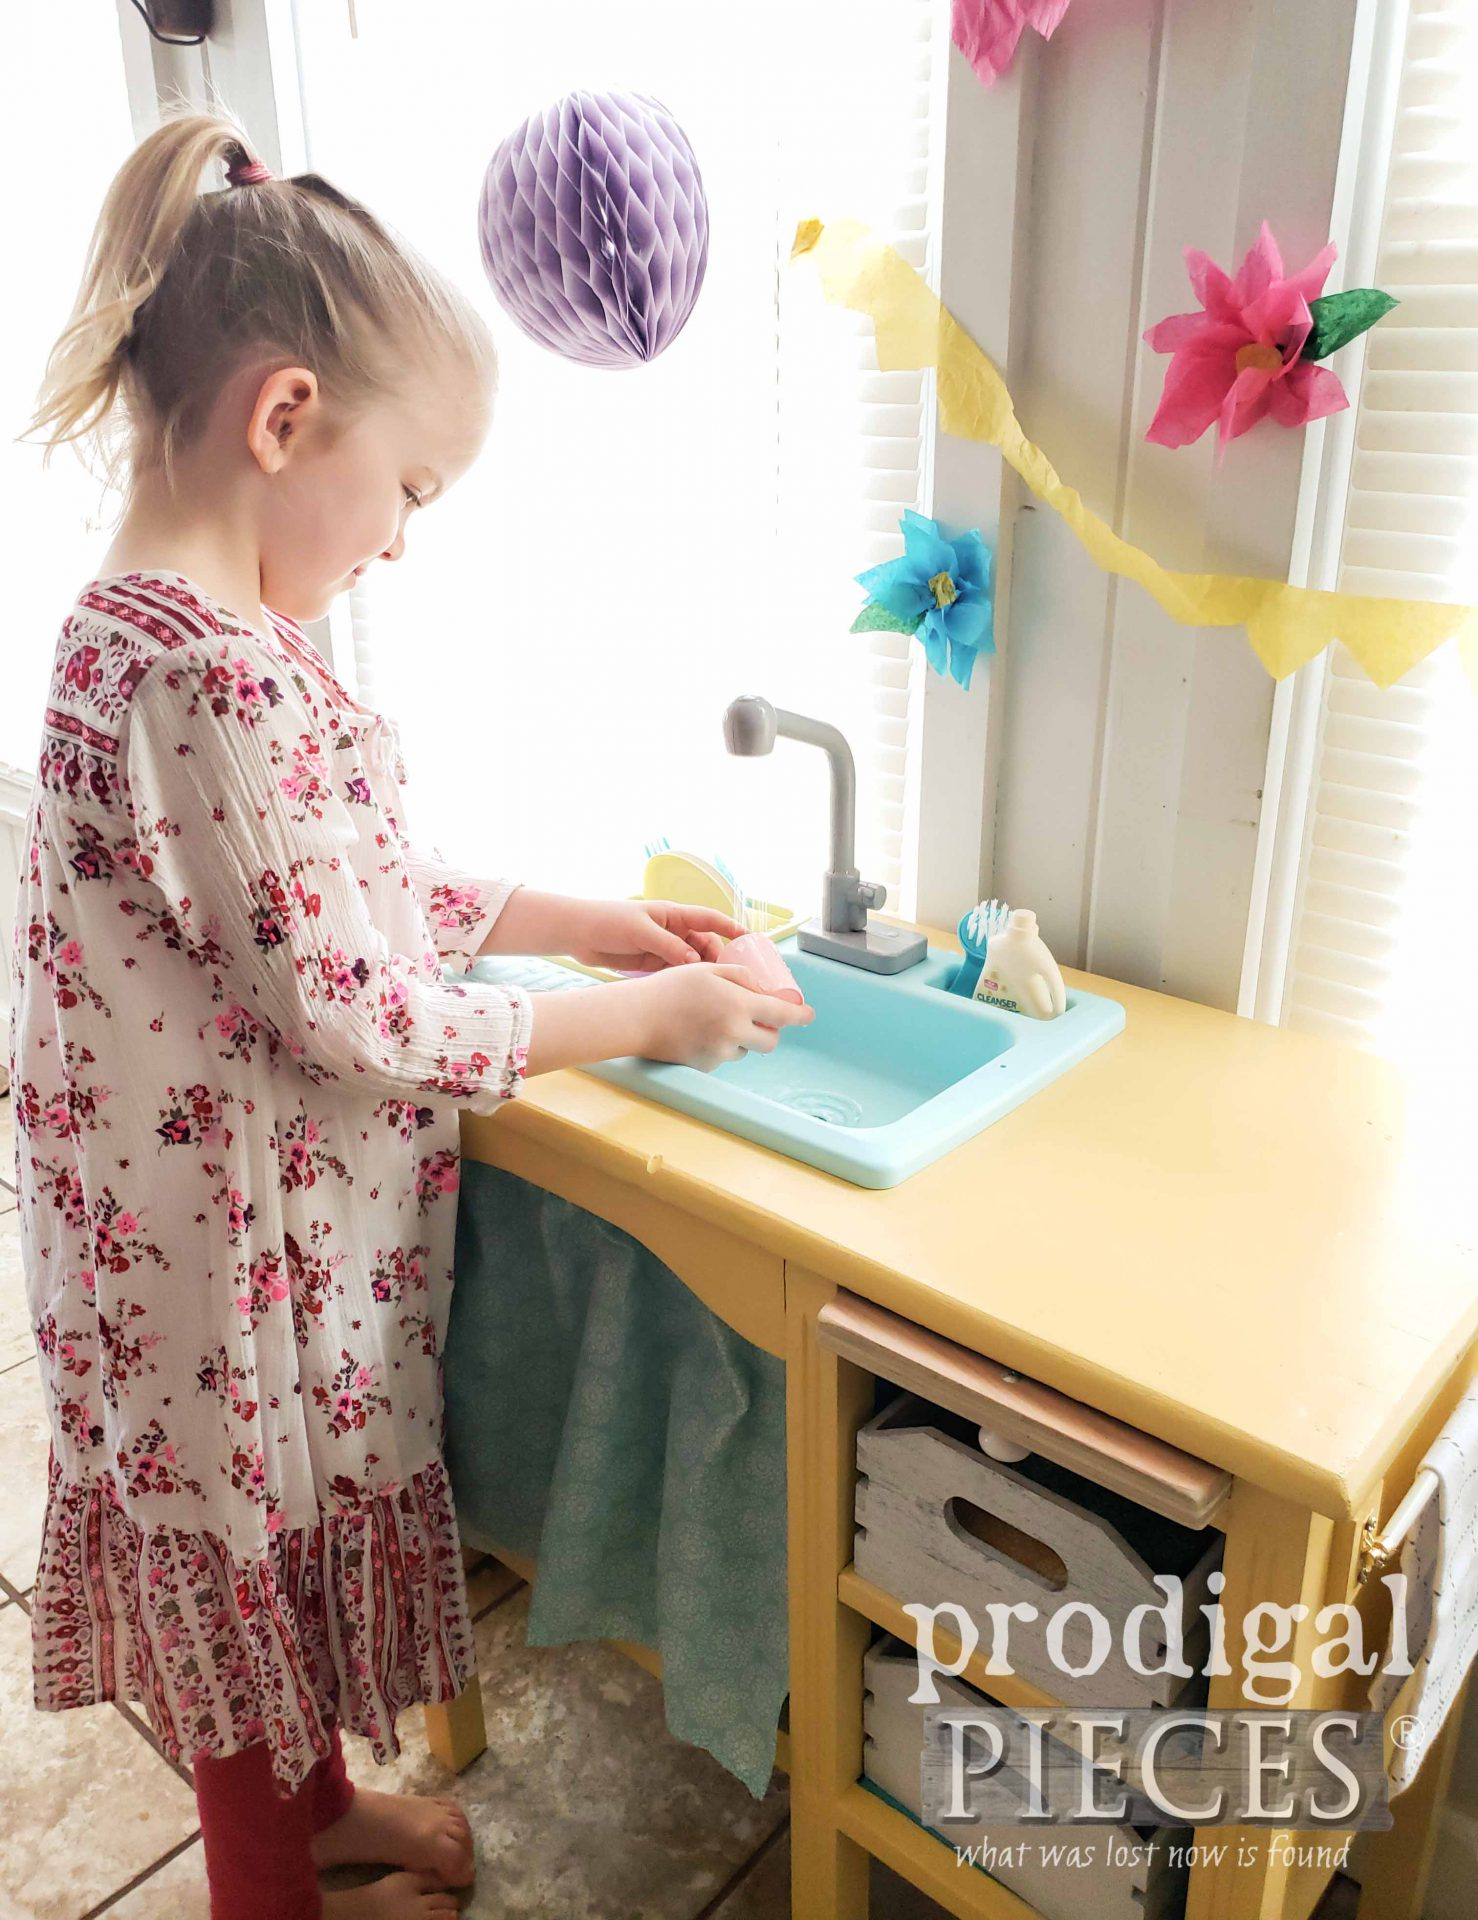 Girl Washing Dishes in Working Upcycled Play Kitchen by Larissa of Prodigal Pieces | prodigalpieces.com #prodigalpieces #diy #fun #kids #play